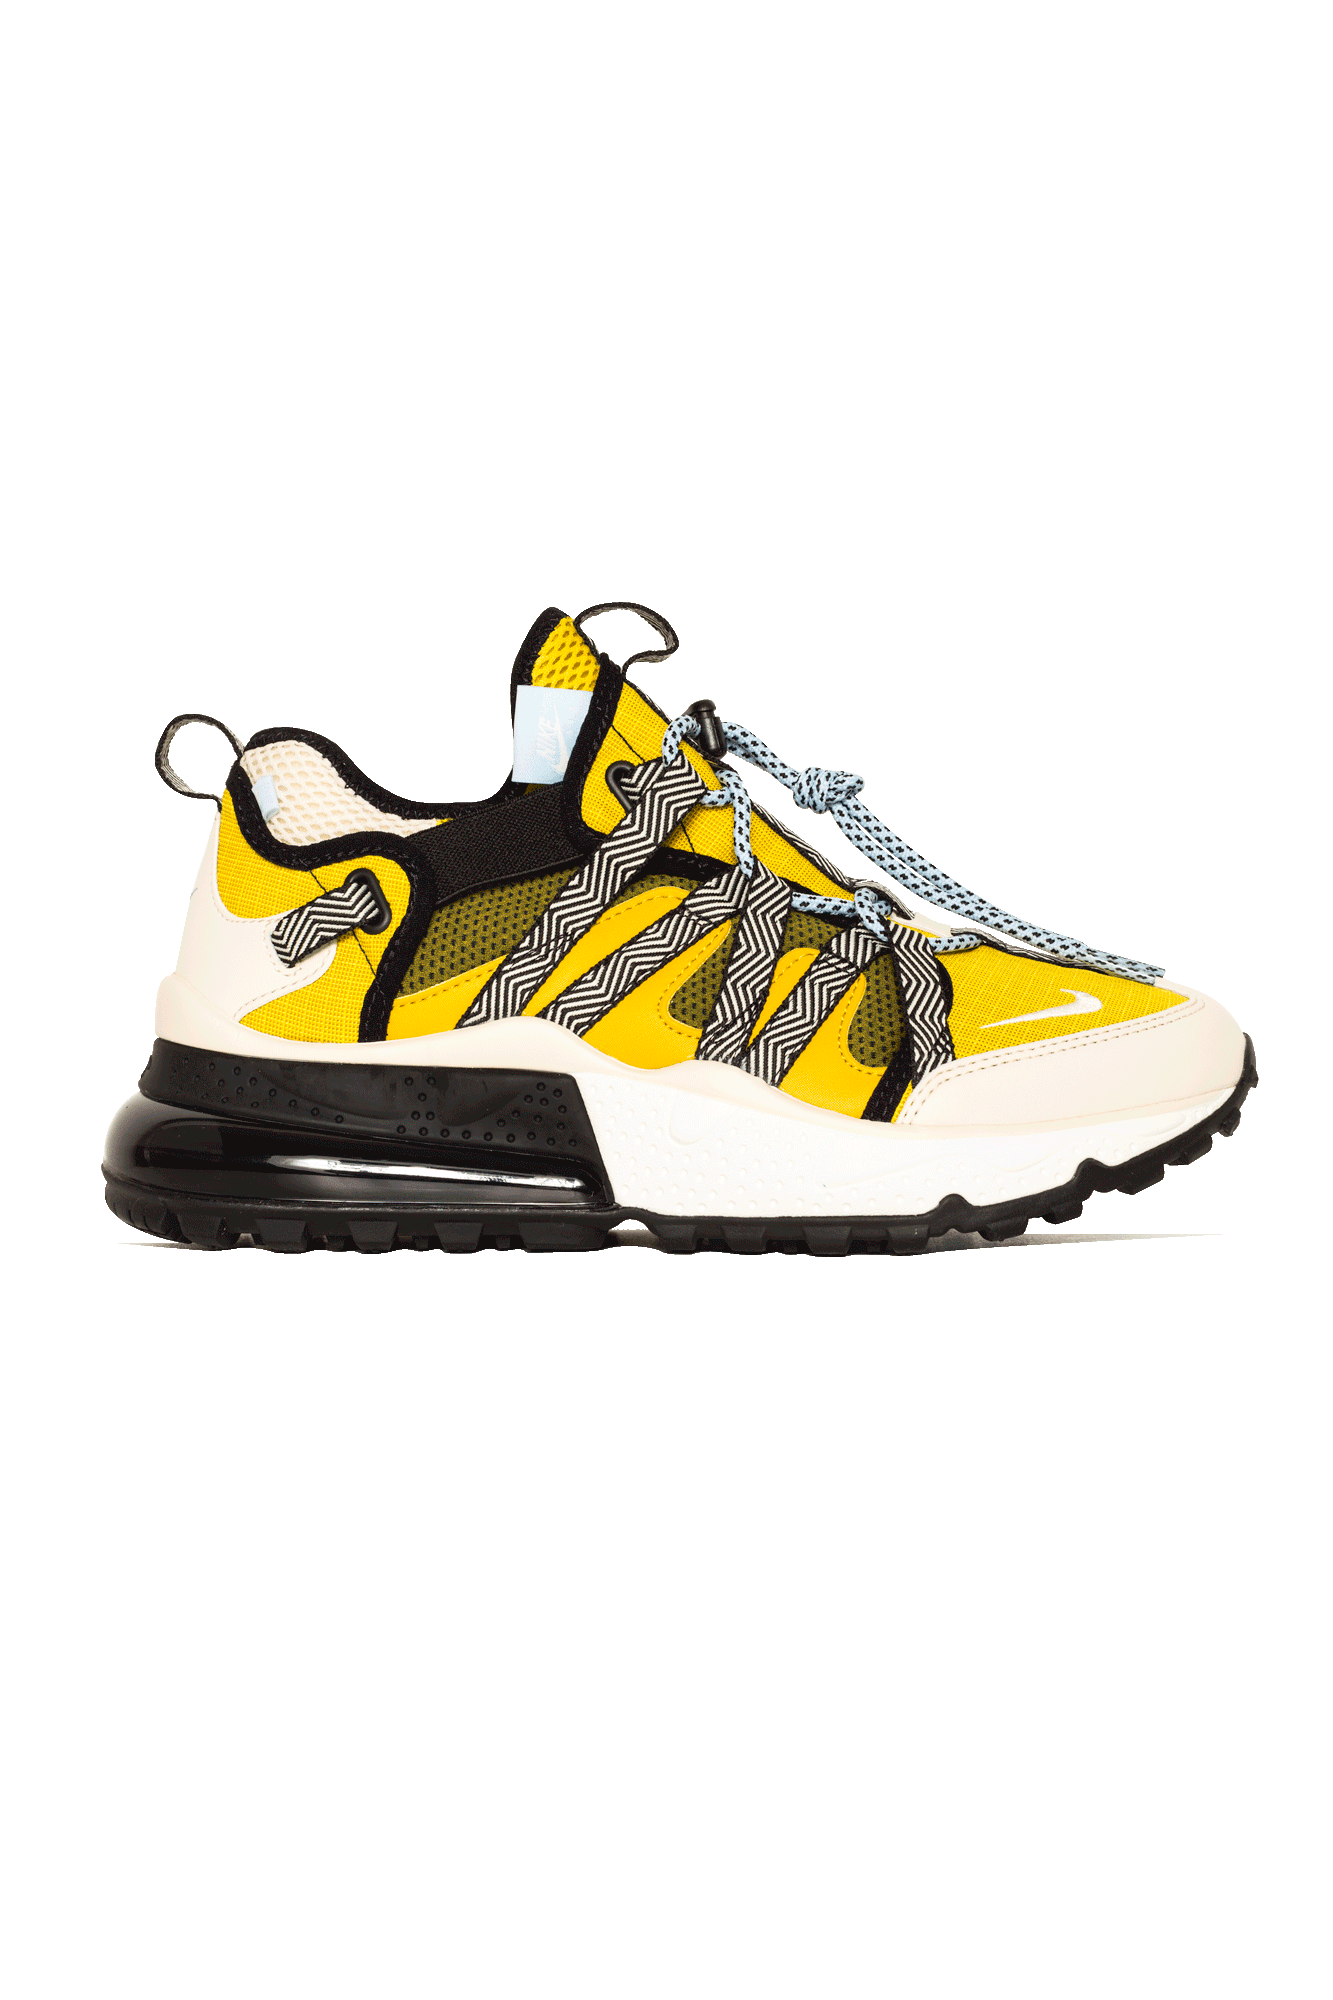 Nike Sneakers Air Max 270 Bowfin Yellow AJ7200 #000#300#8,5 One Block Down